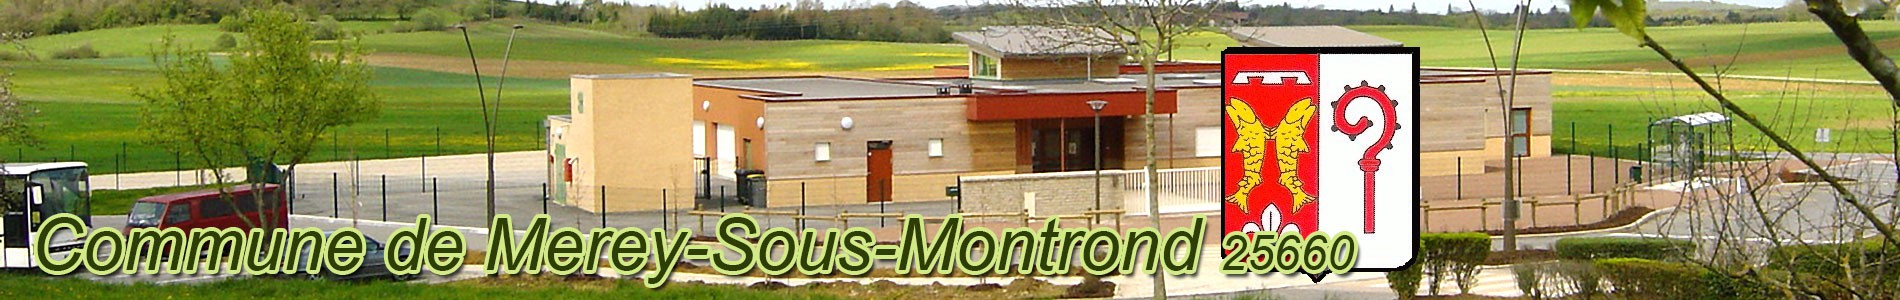 Merey-Sous-Montrond - 25660